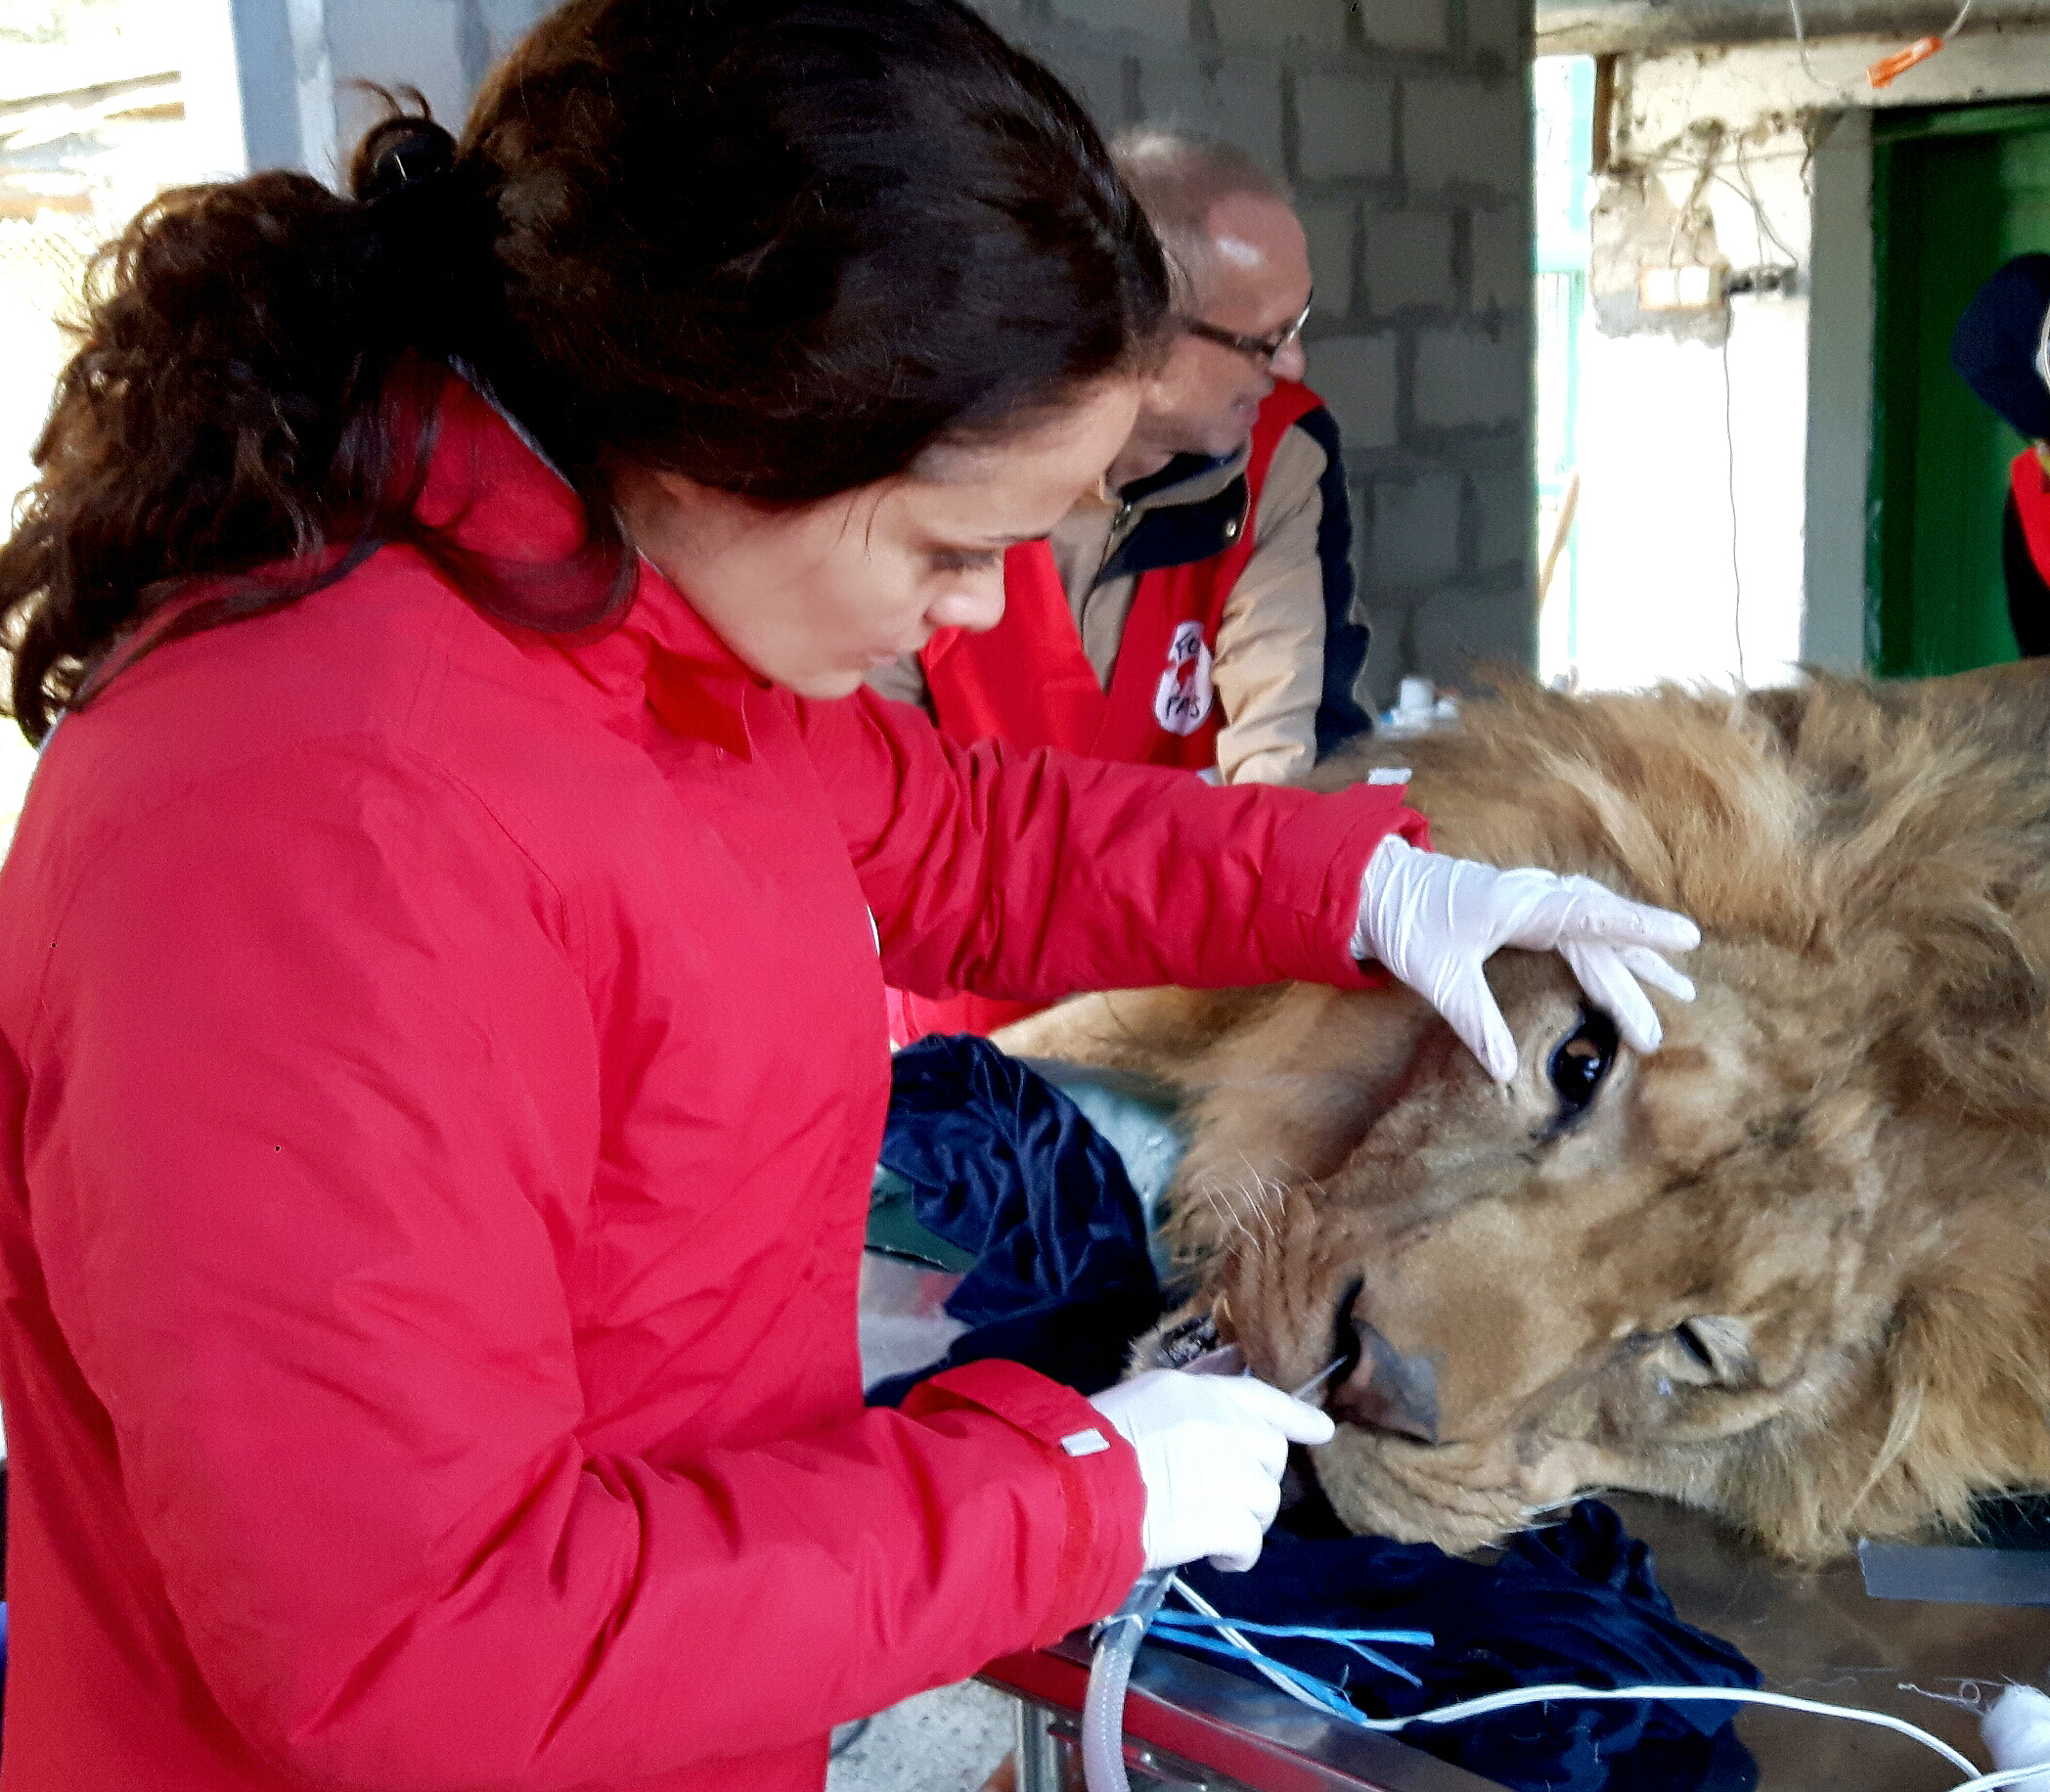 Dr. Maria Savova performed the ophthalmological examinations of 5 lions